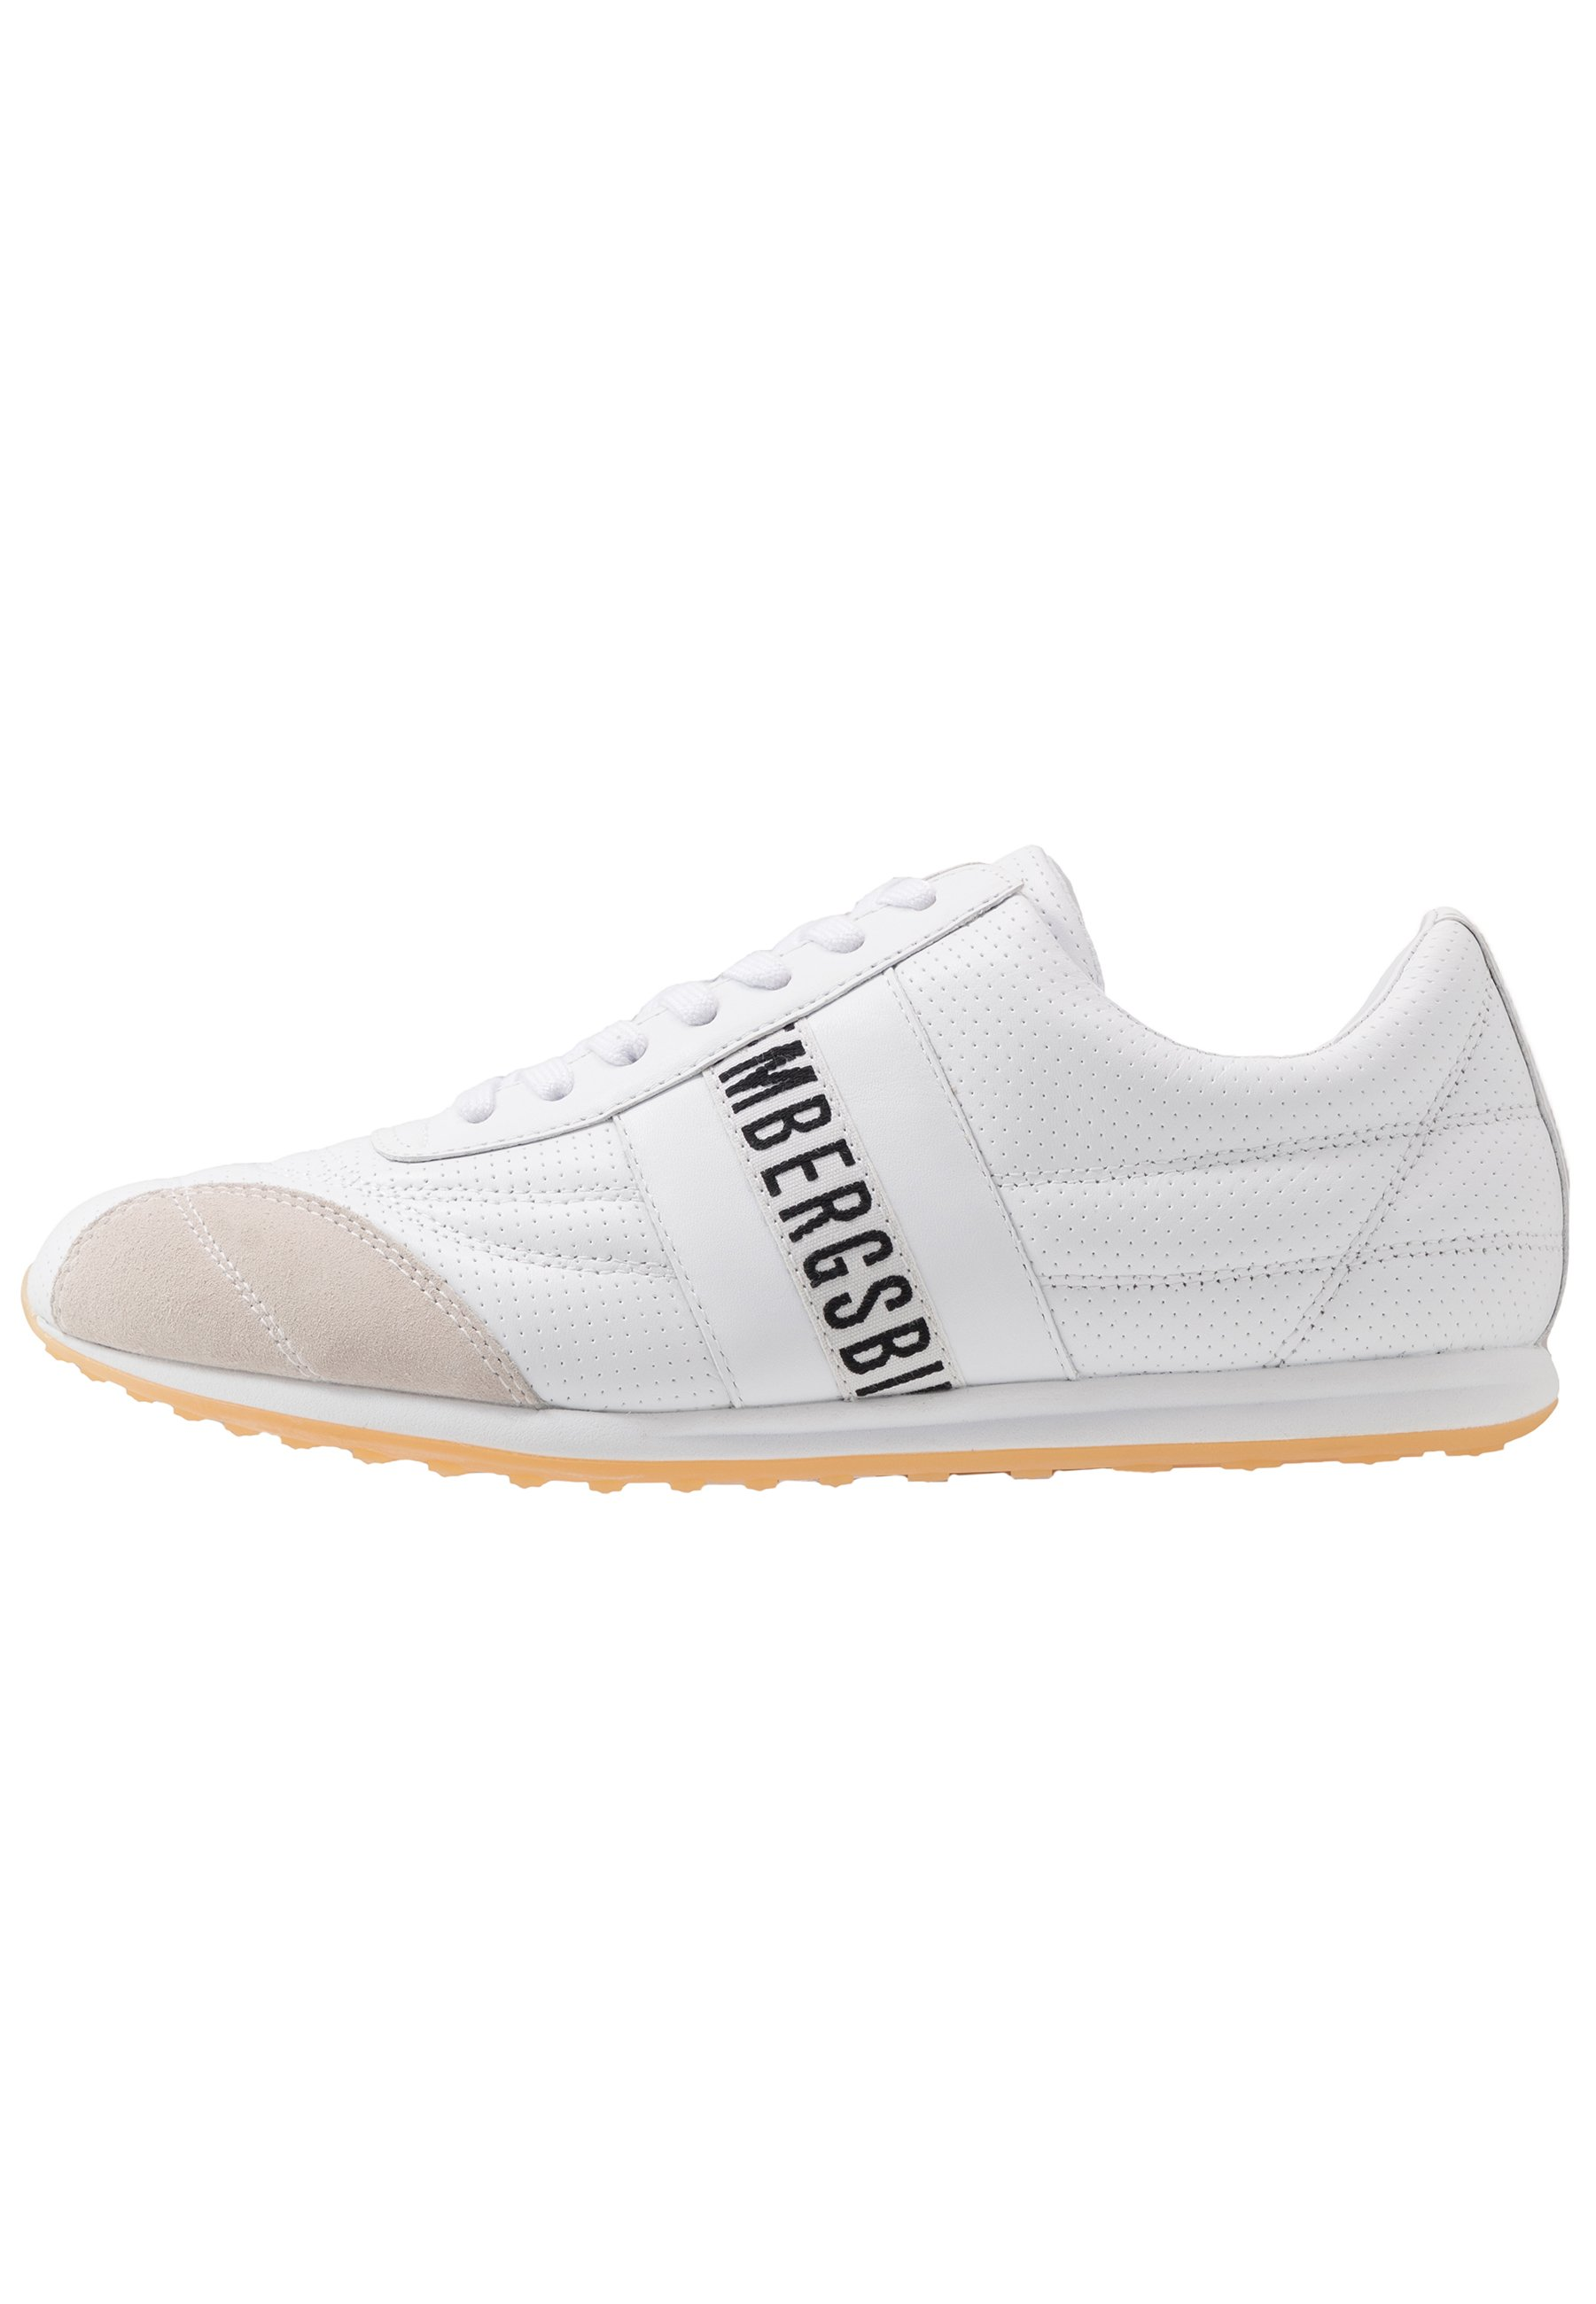 BARTHEL Sneakers white